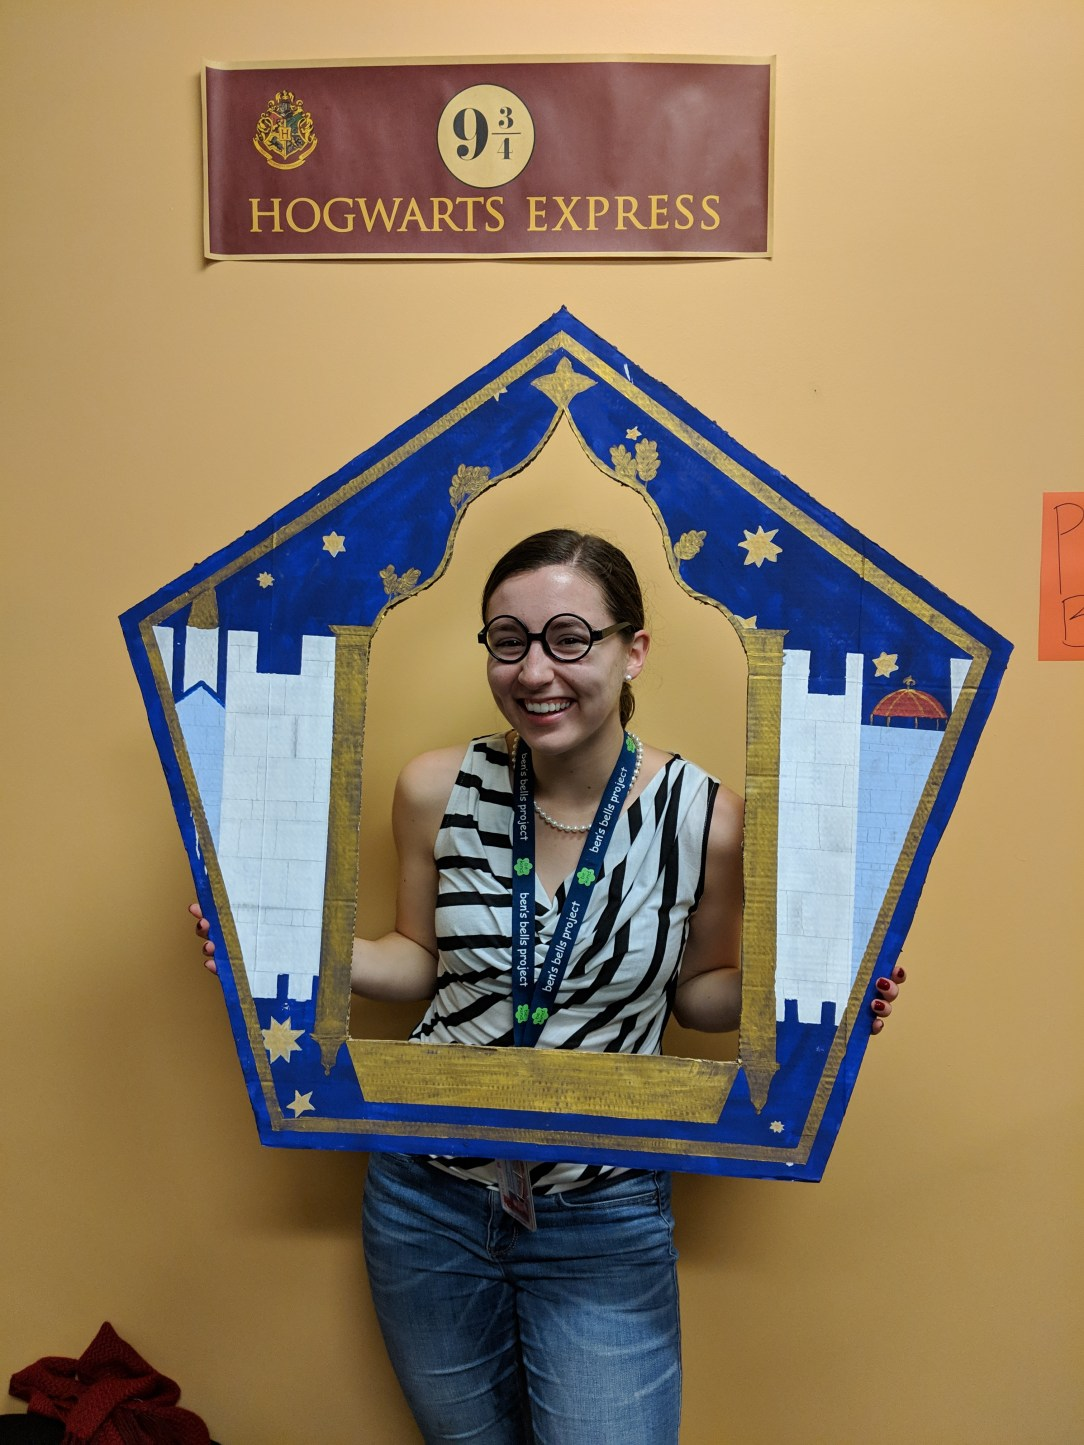 Harry Potter nerd, chocolate frogs, Hogwarts Express